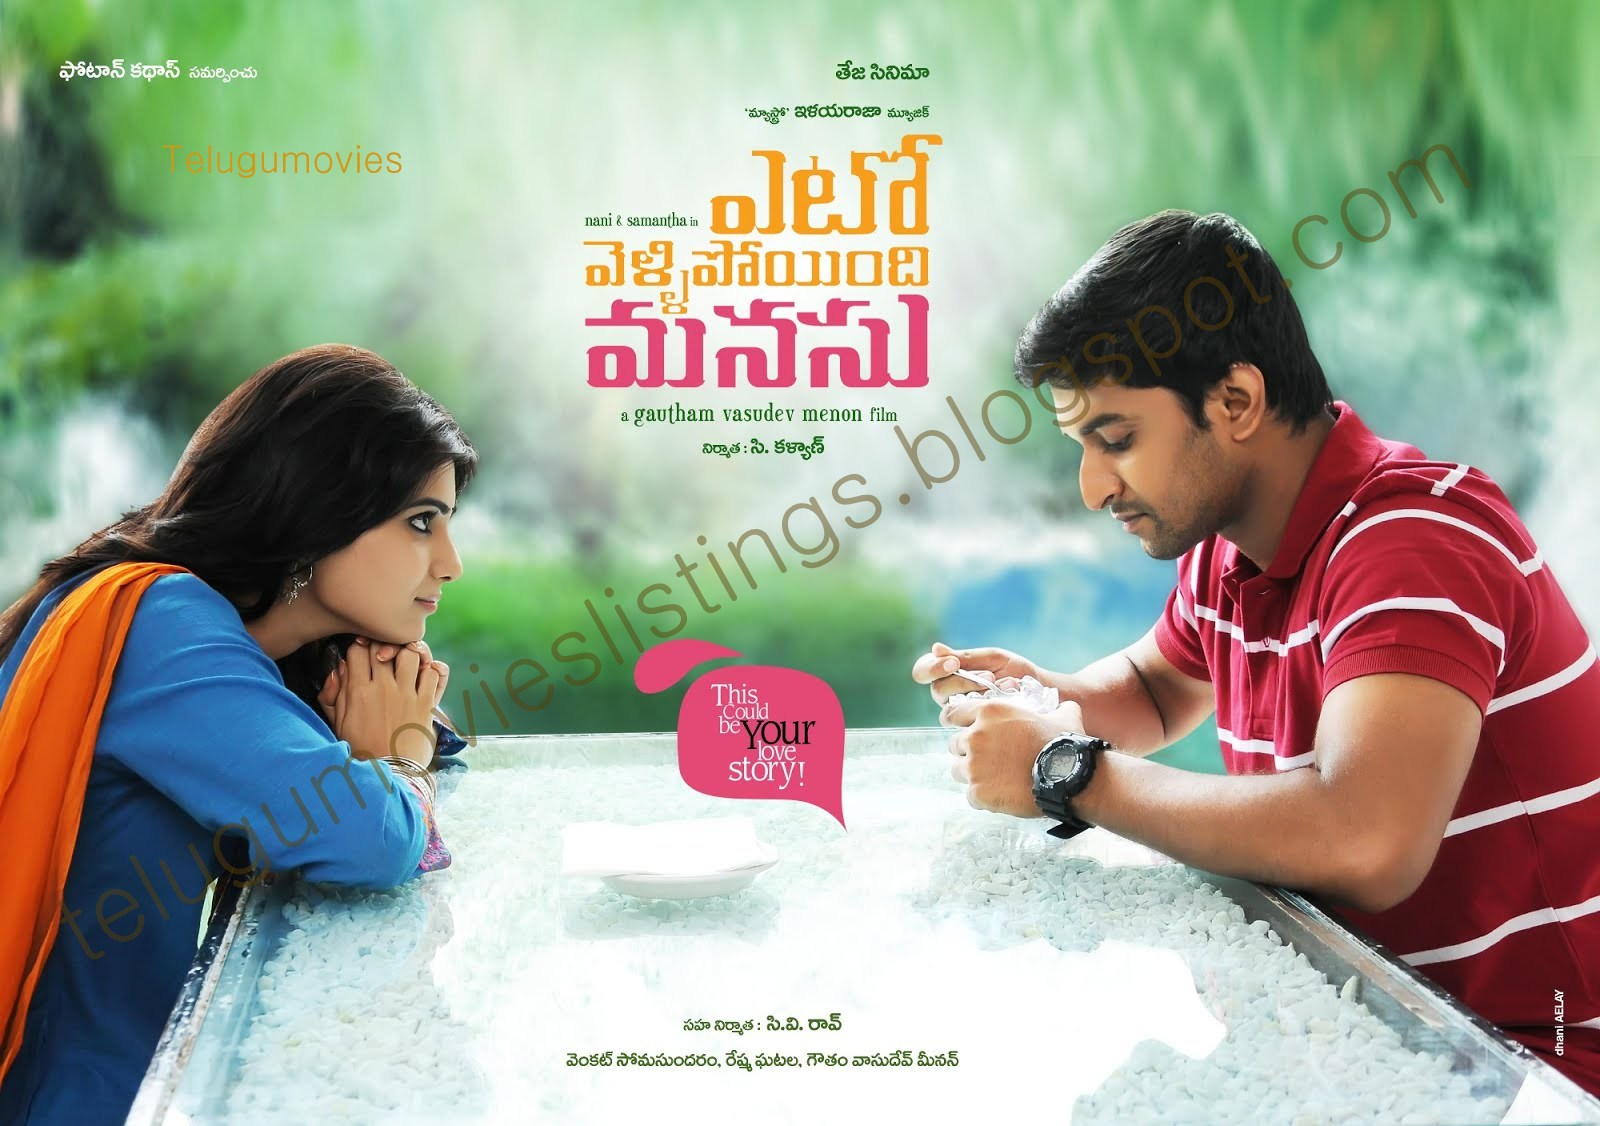 telugu movies schedules: yeto vellipoindi manasu satellite rights